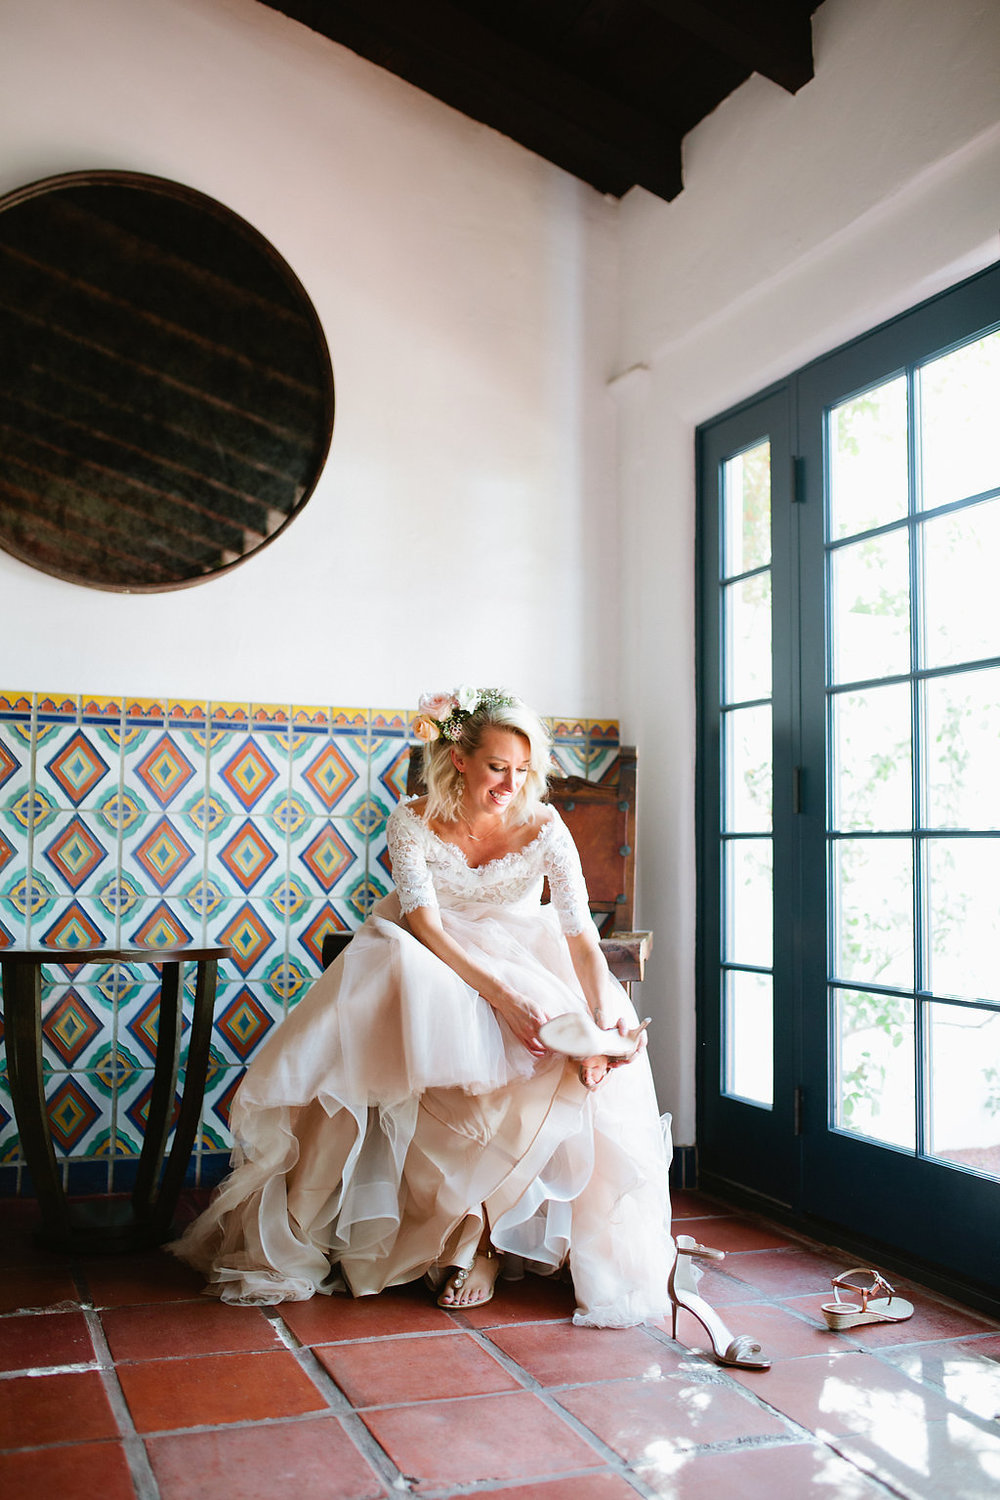 LA CHUREYA ESTATE WEDDING_BETSI EWING STUDIO 224.JPG